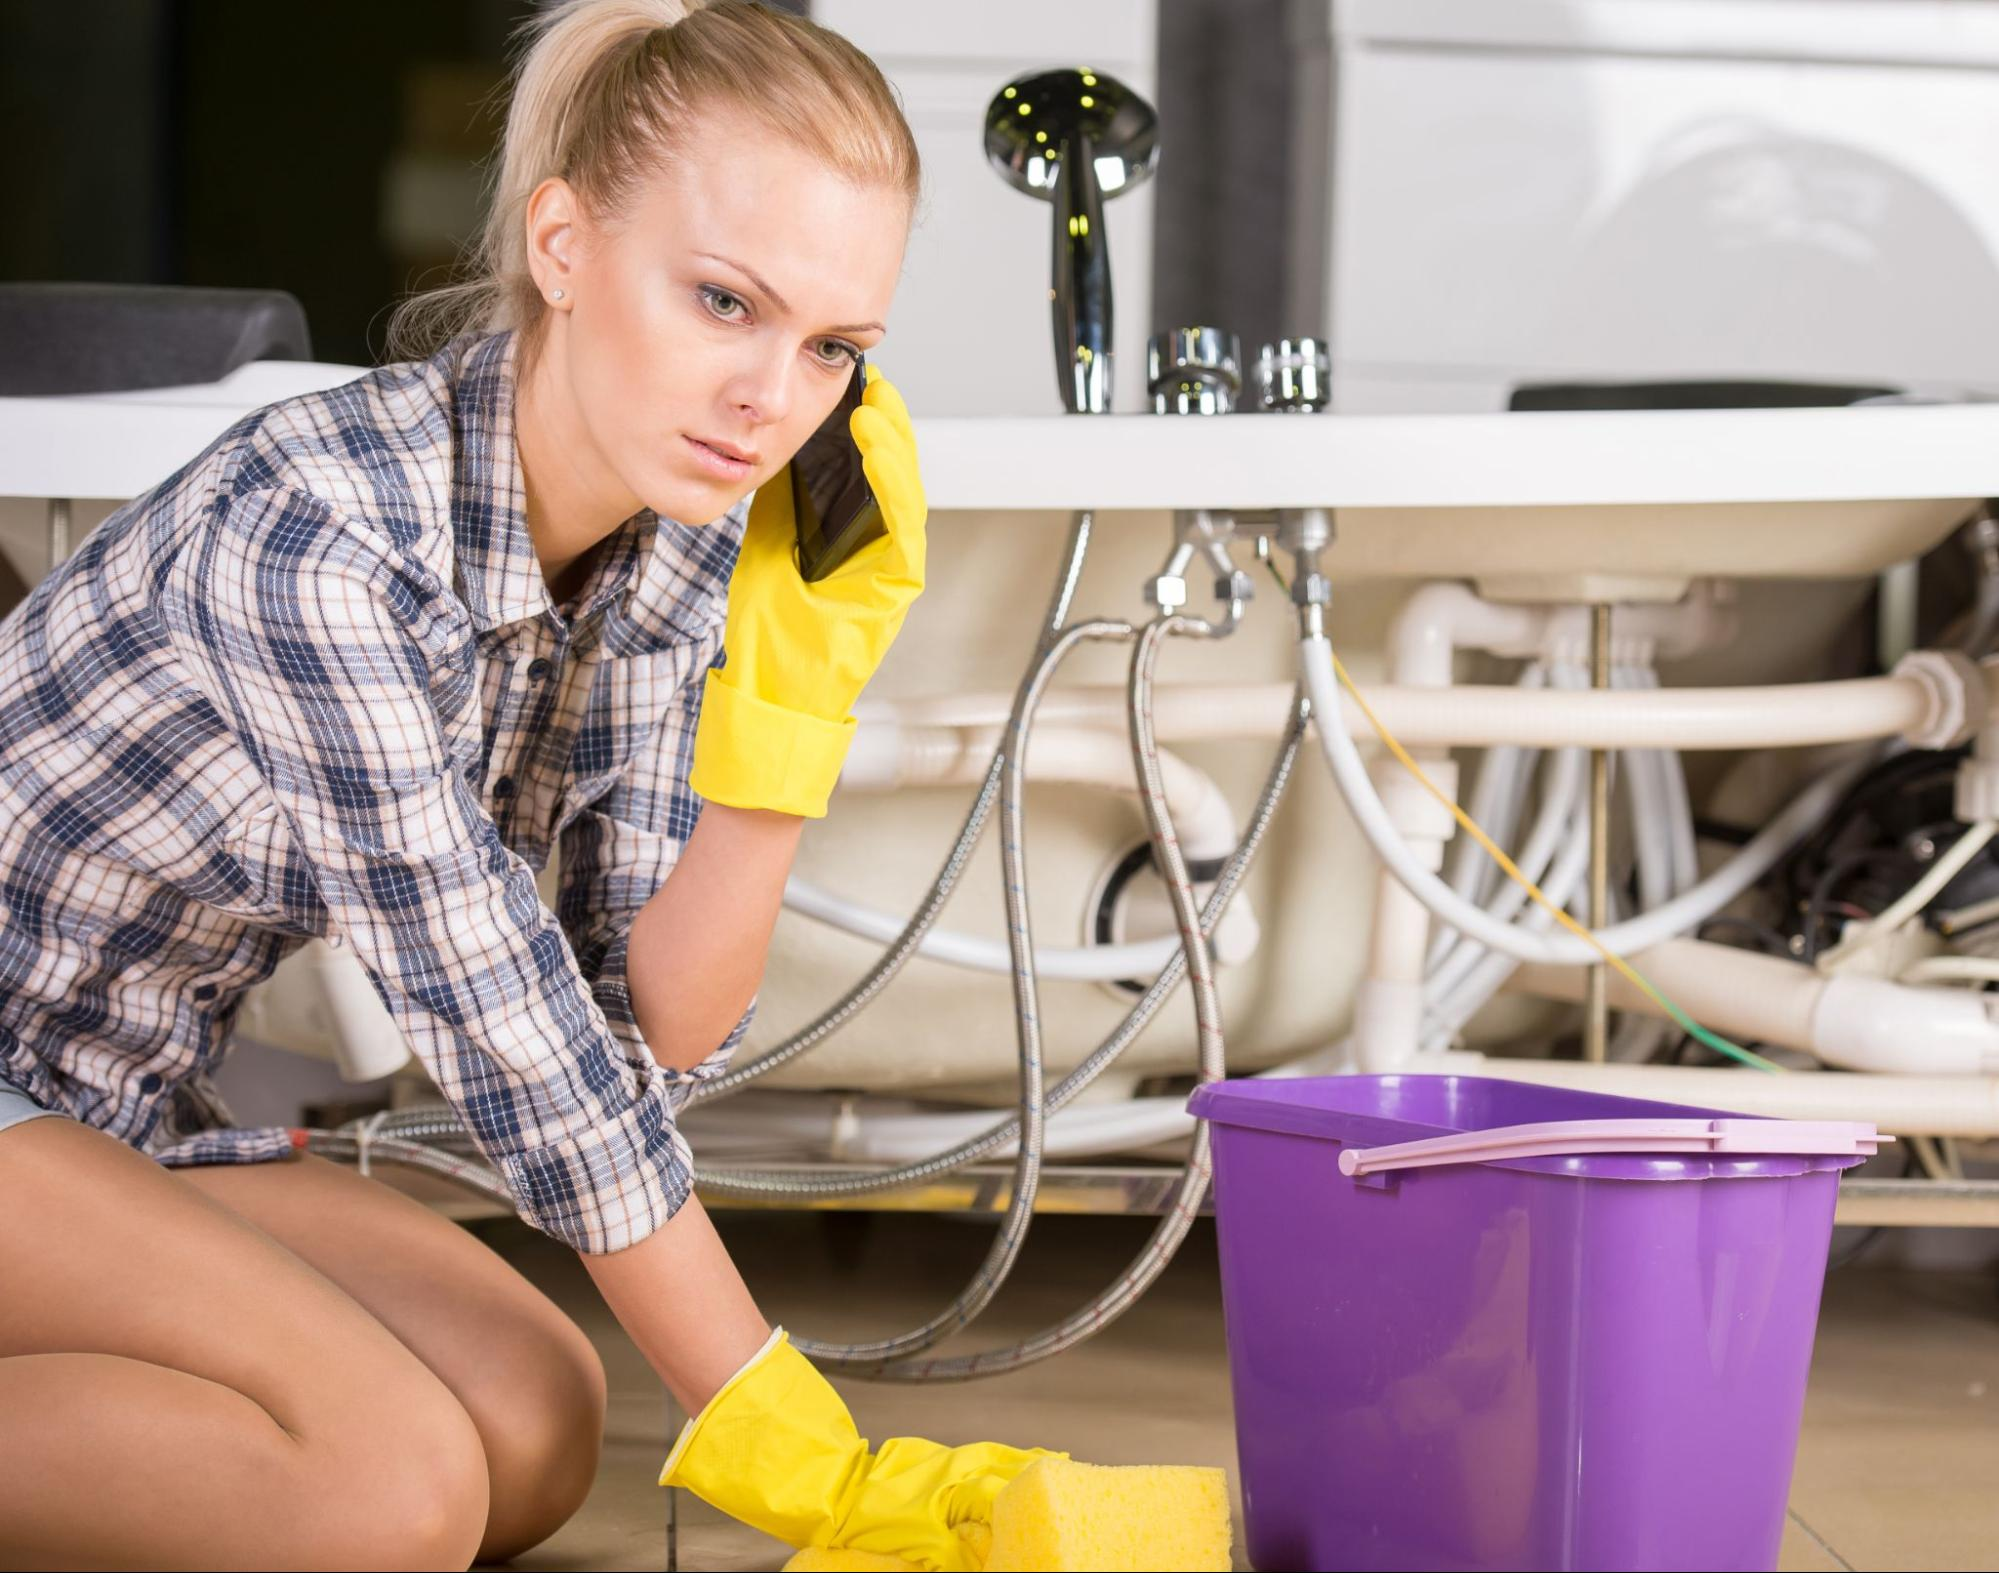 Upset woman cleaning up puddles from a pipe leak while talking on the phone